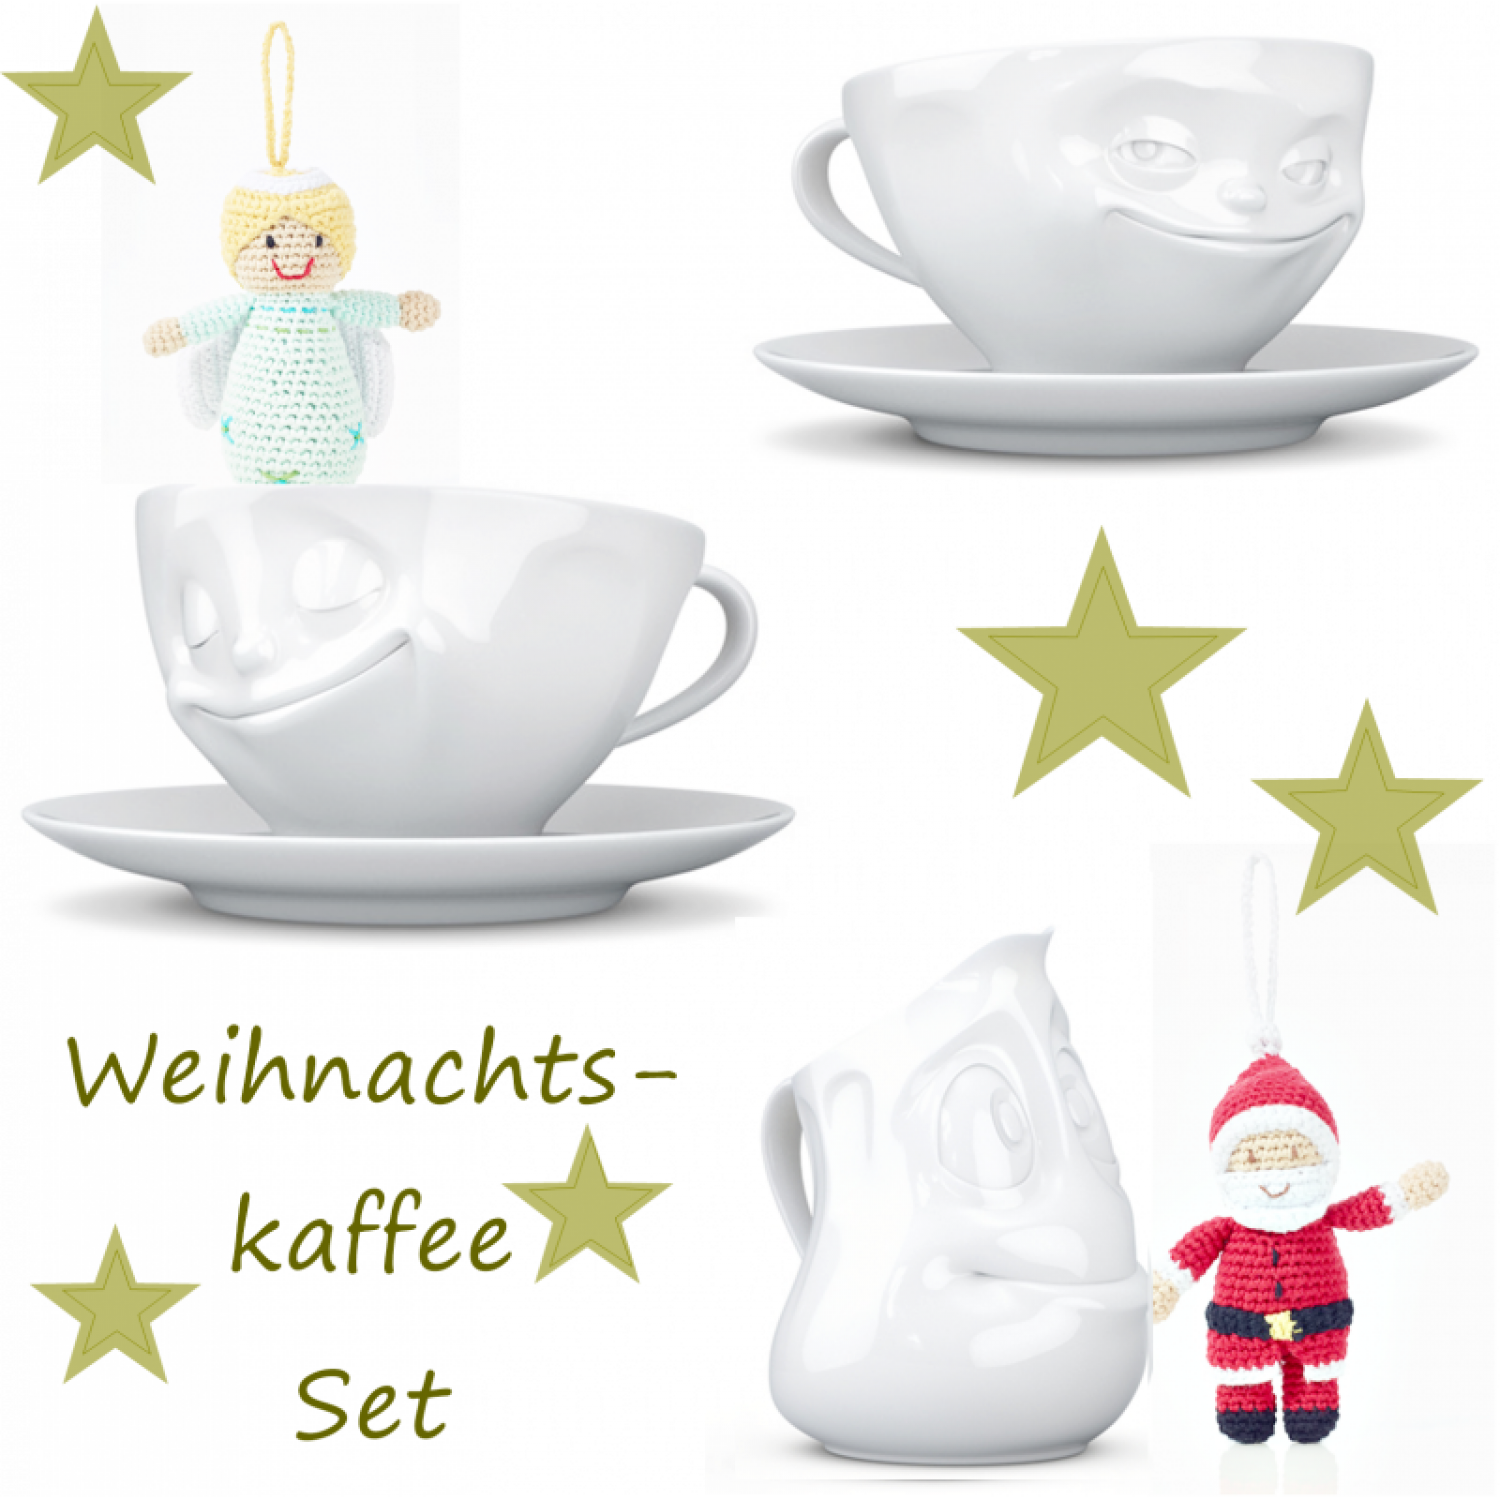 Fiftyeight Products Kaffeeset – Weihnachtsset